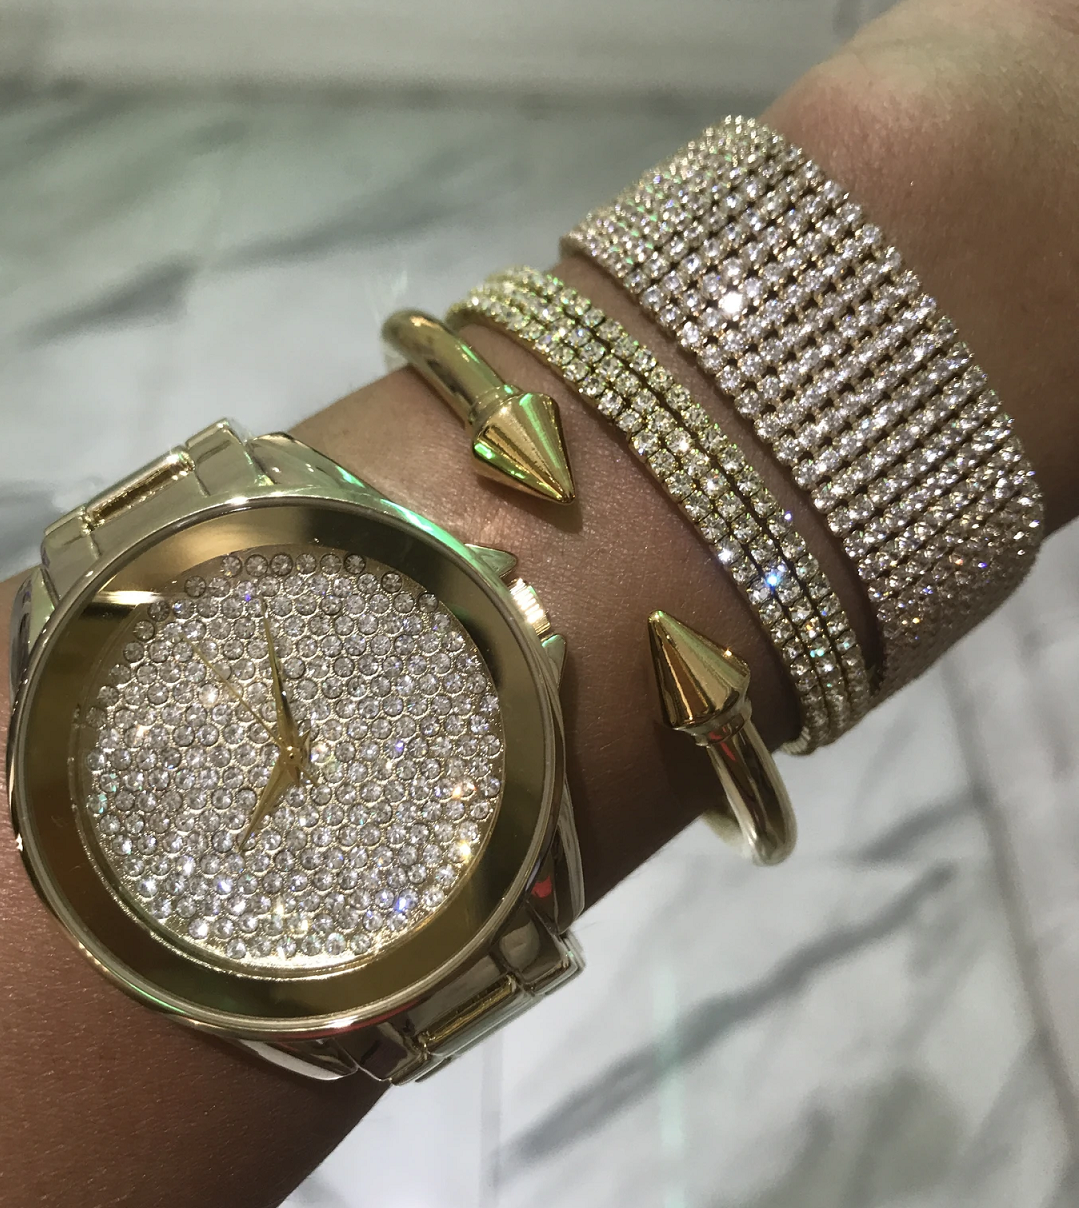 BEST WOMEN'S Bling WATCHES 2021Gold Round Dial Watch with Diamonds and Matching Bracelet